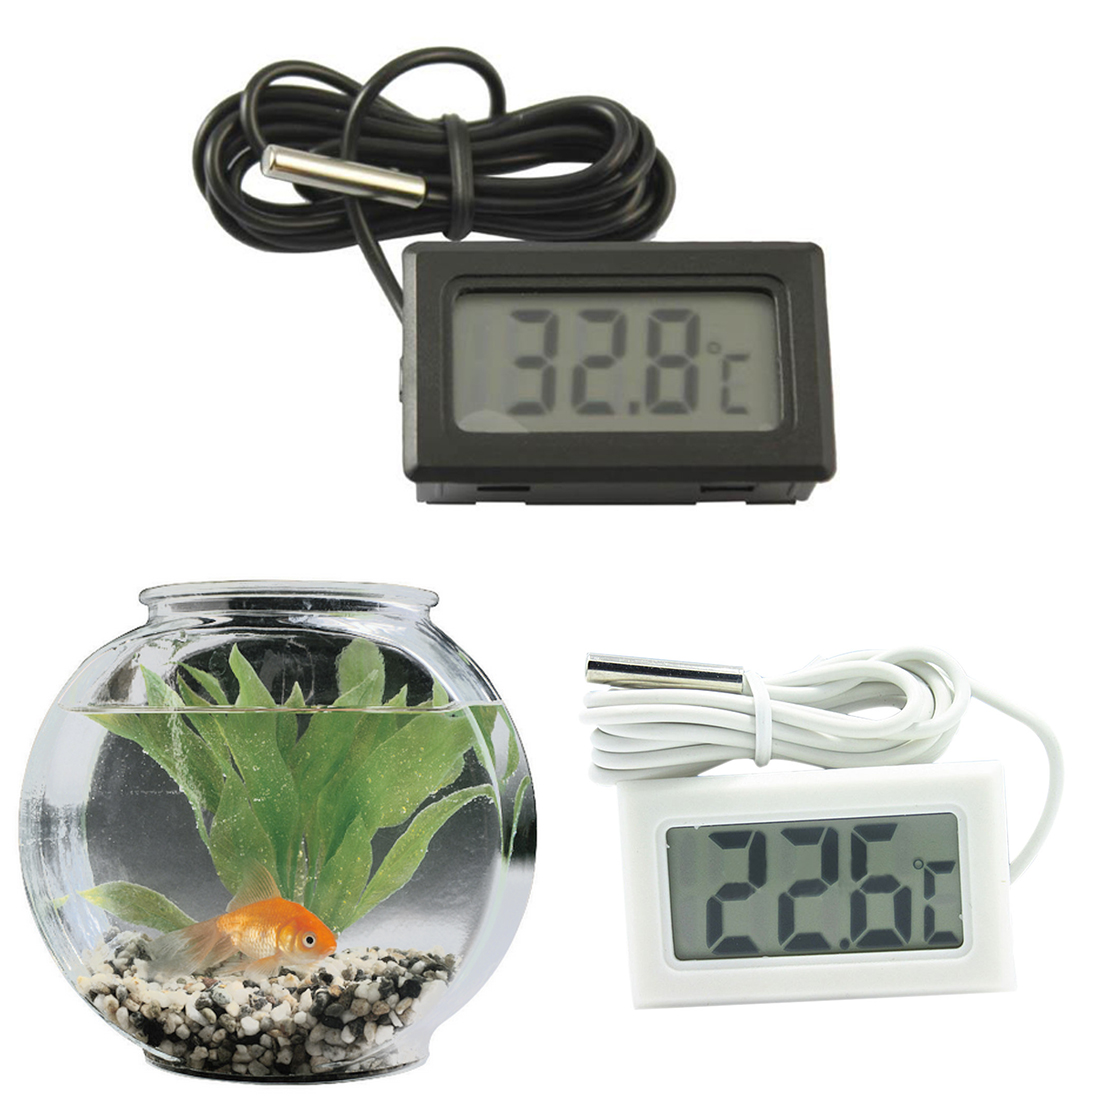 -<font><b>50</b></font> to 110 Digital Thermometer Mini LCD Display Meter Fridges Freezers <font><b>Coolers</b></font> Aquarium Chillers Mini 1/2M Probe Instrument image